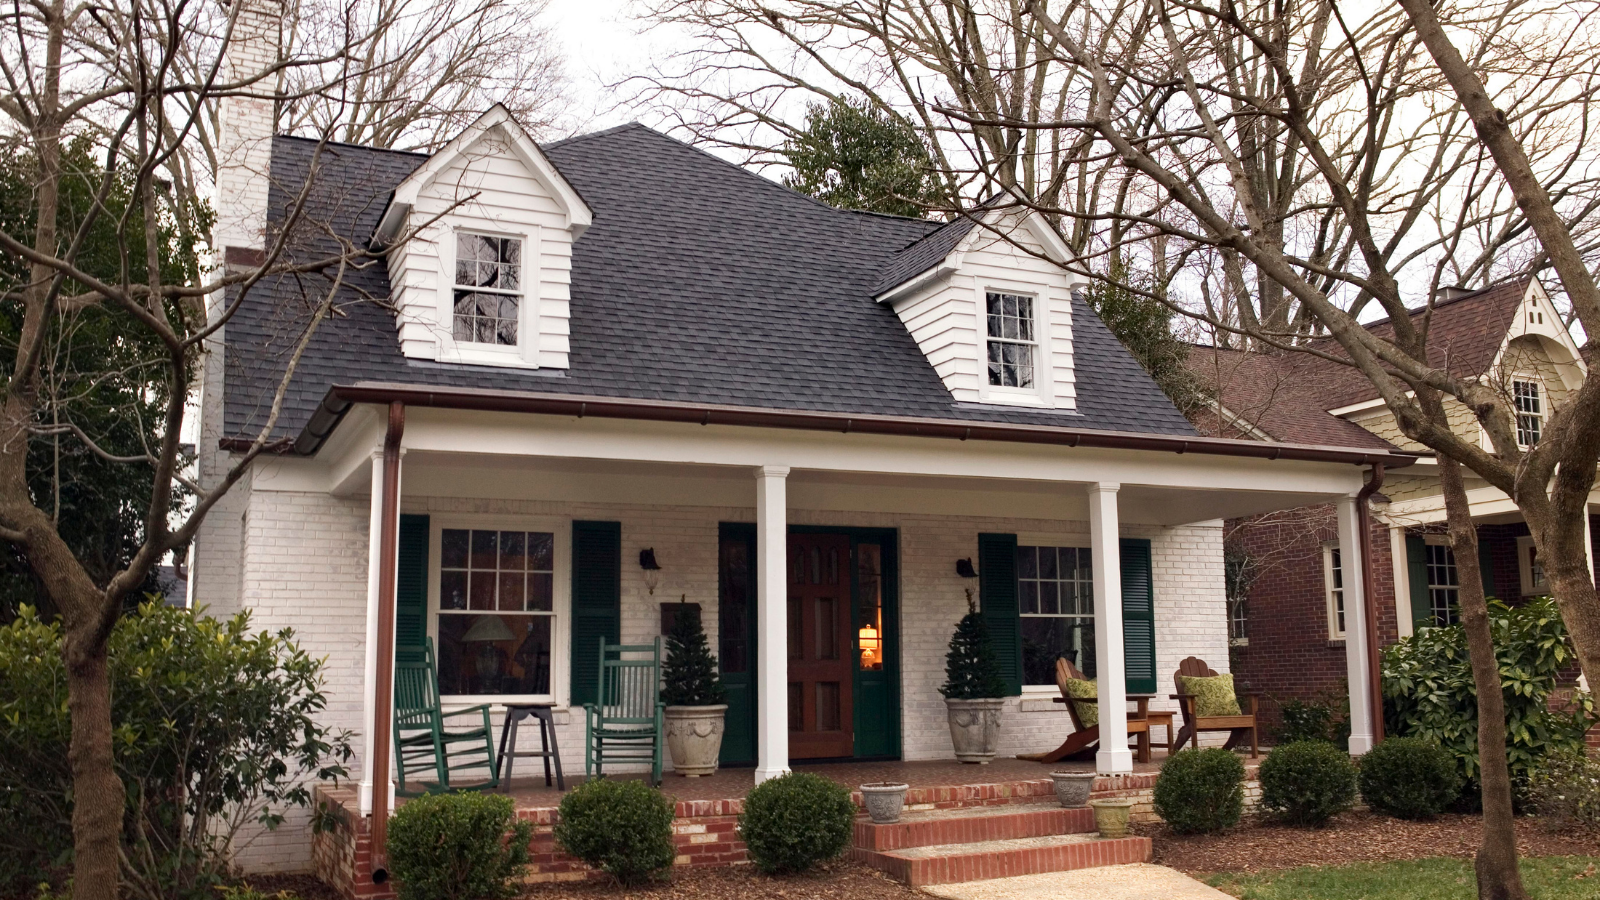 Homes for Sale in Raleigh, NC With Annie Meadows